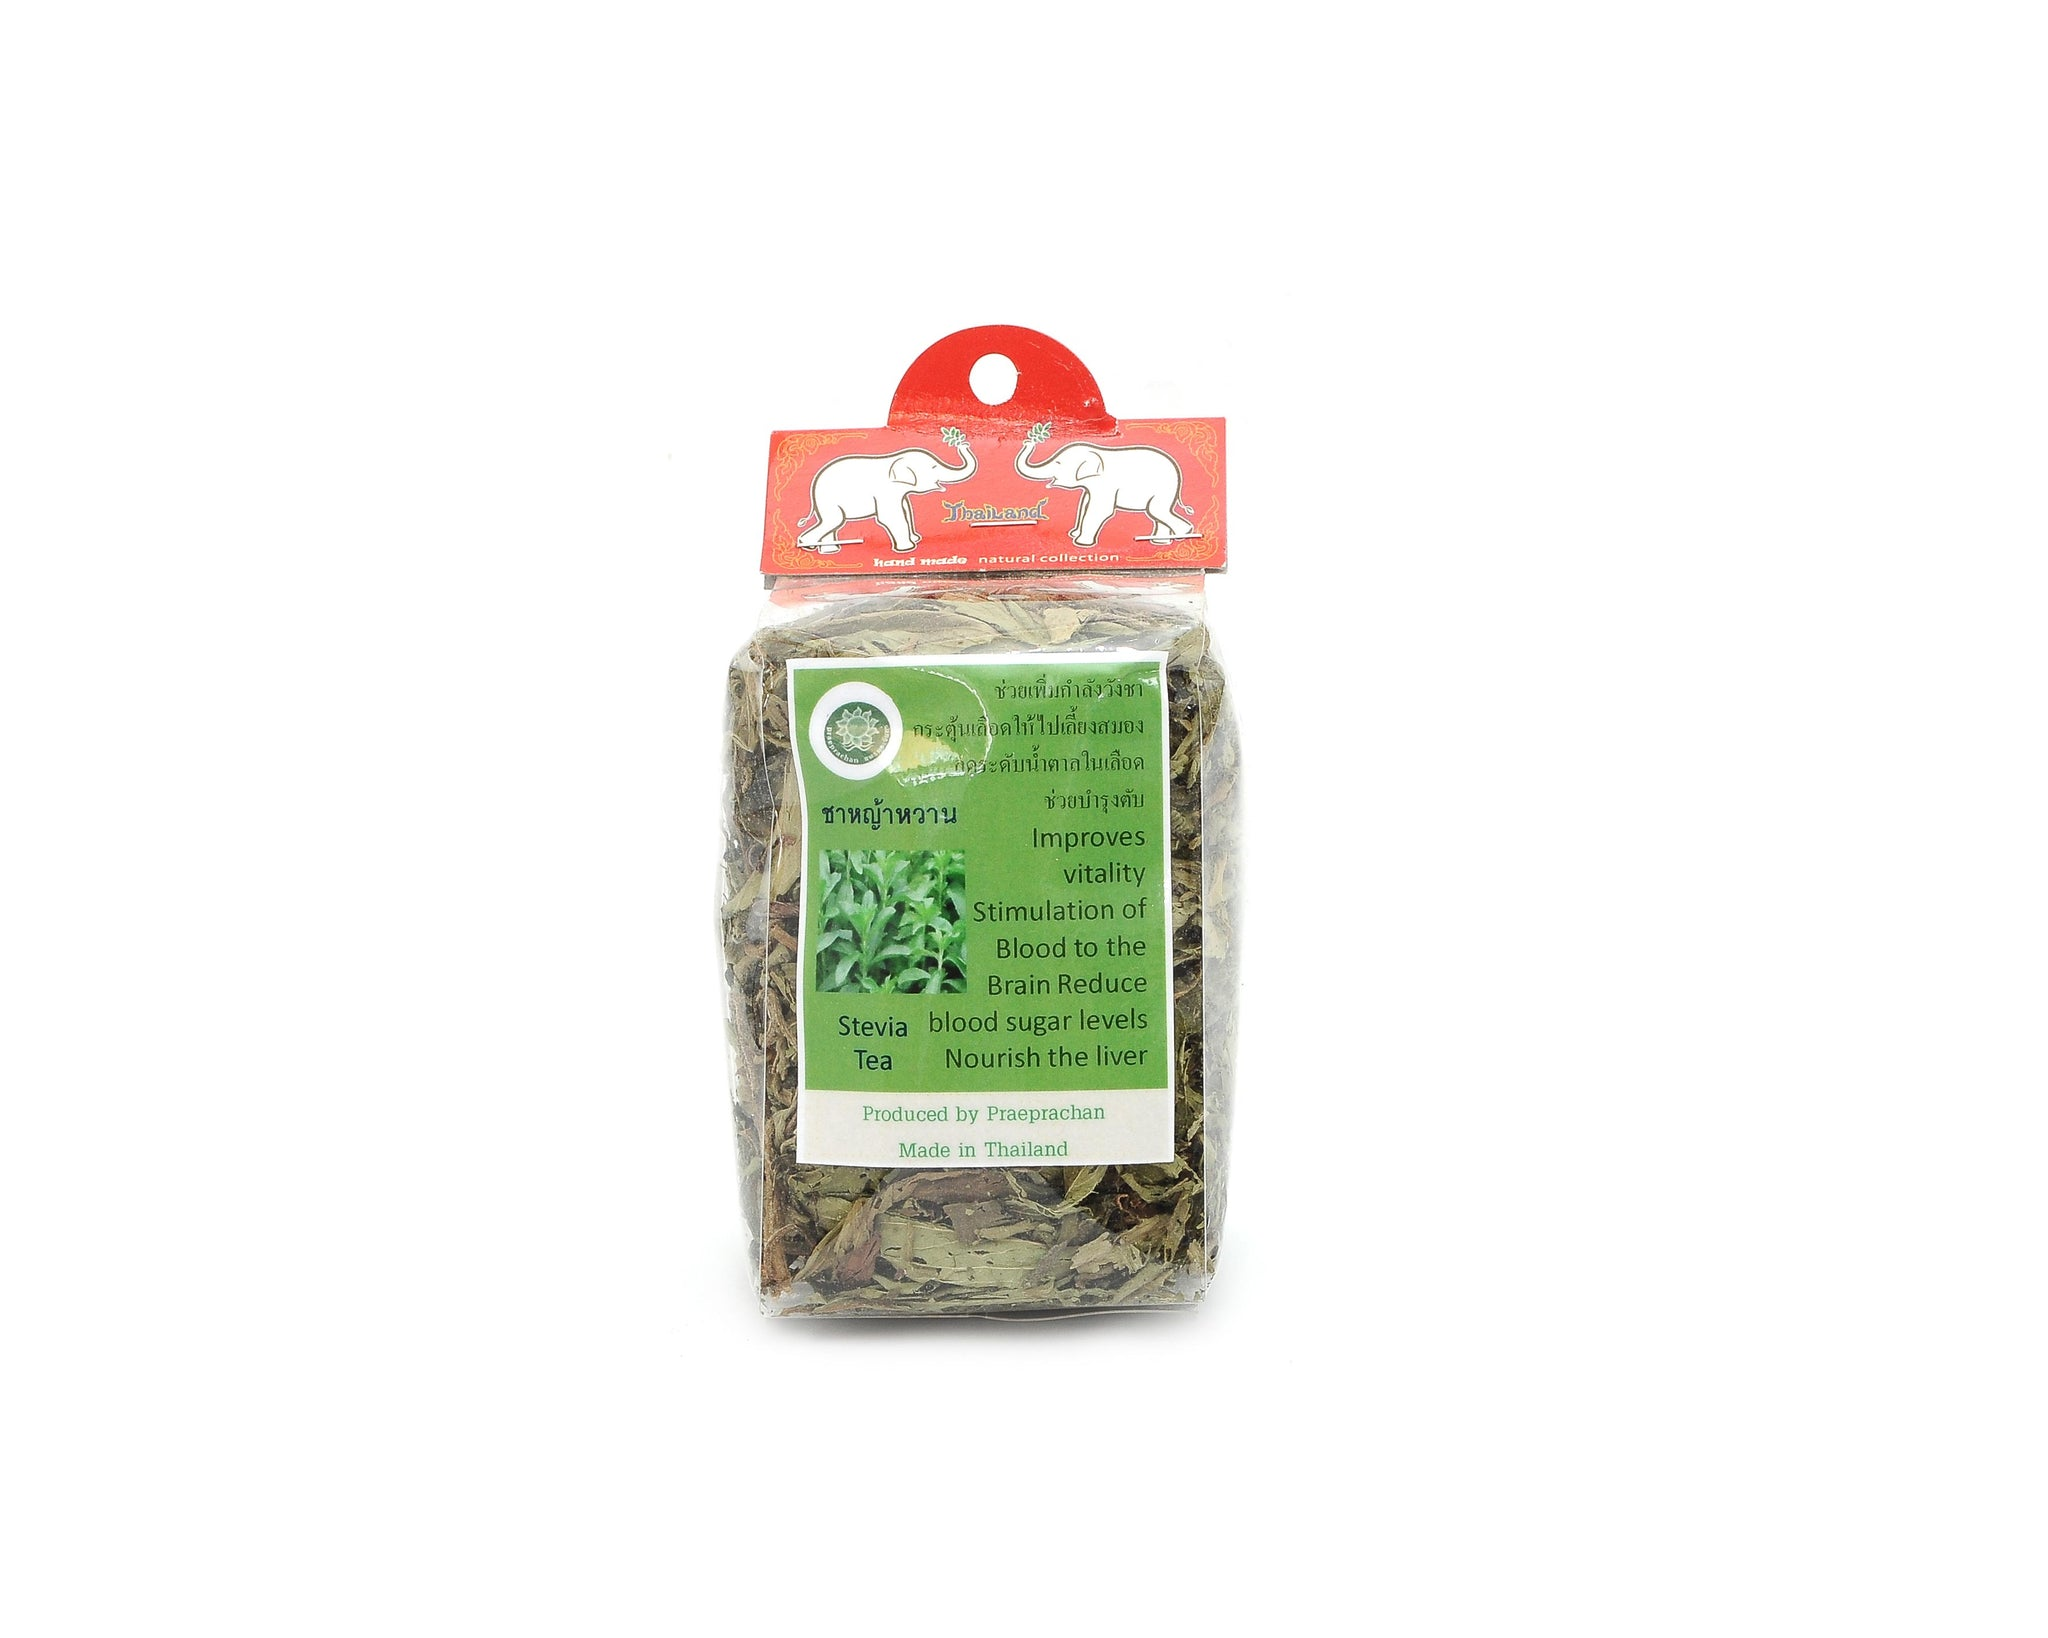 Natural Herbal Tea – 100% Hand-blended With Four Flavors